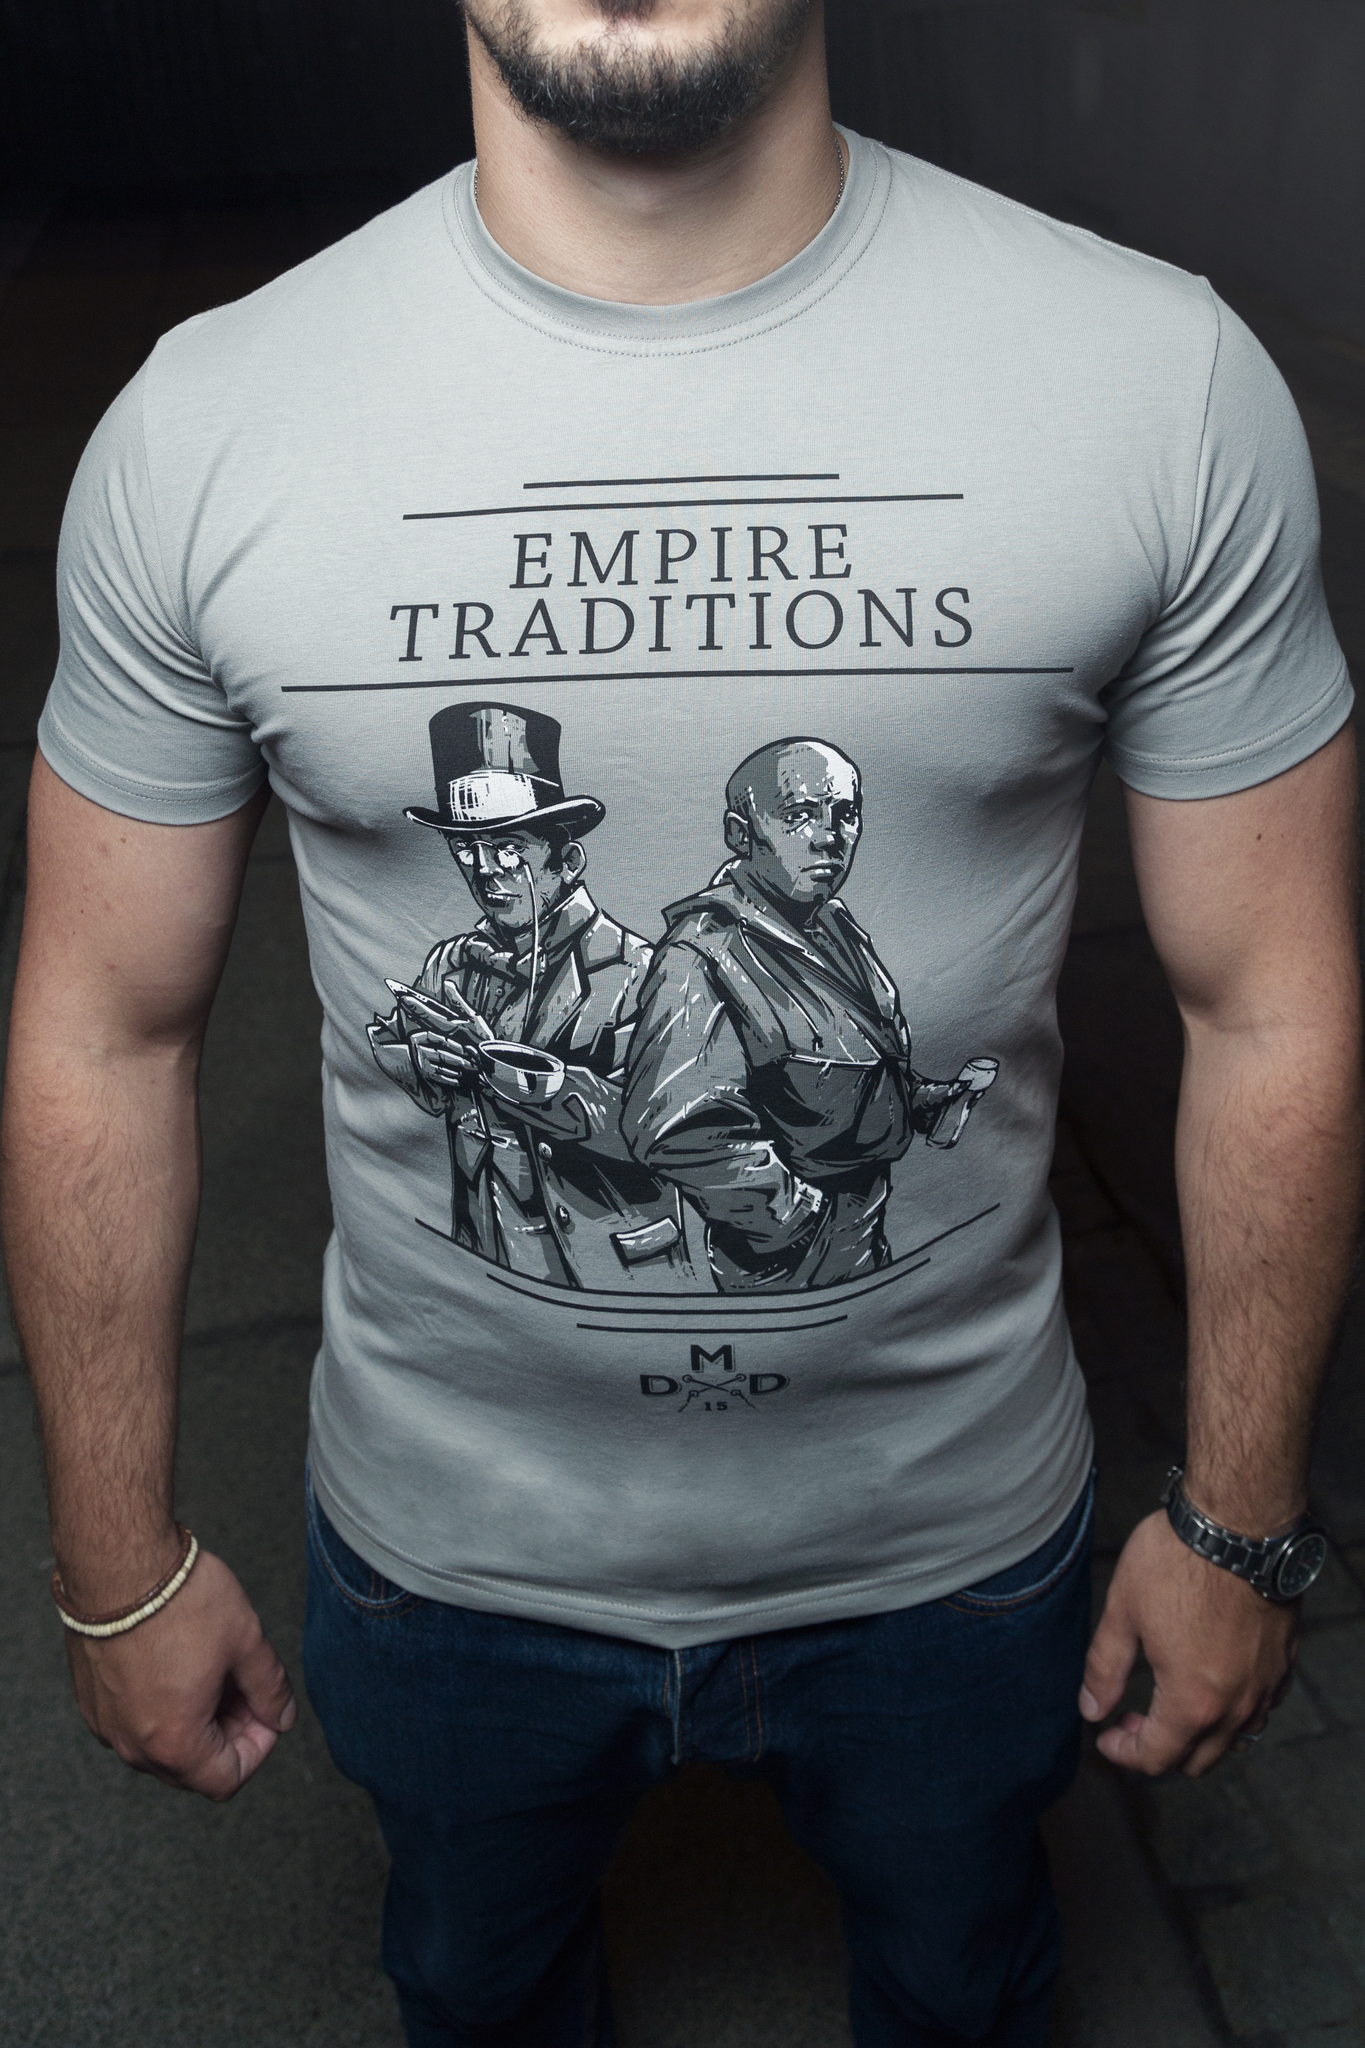 Футболка Empire traditions старый вариант